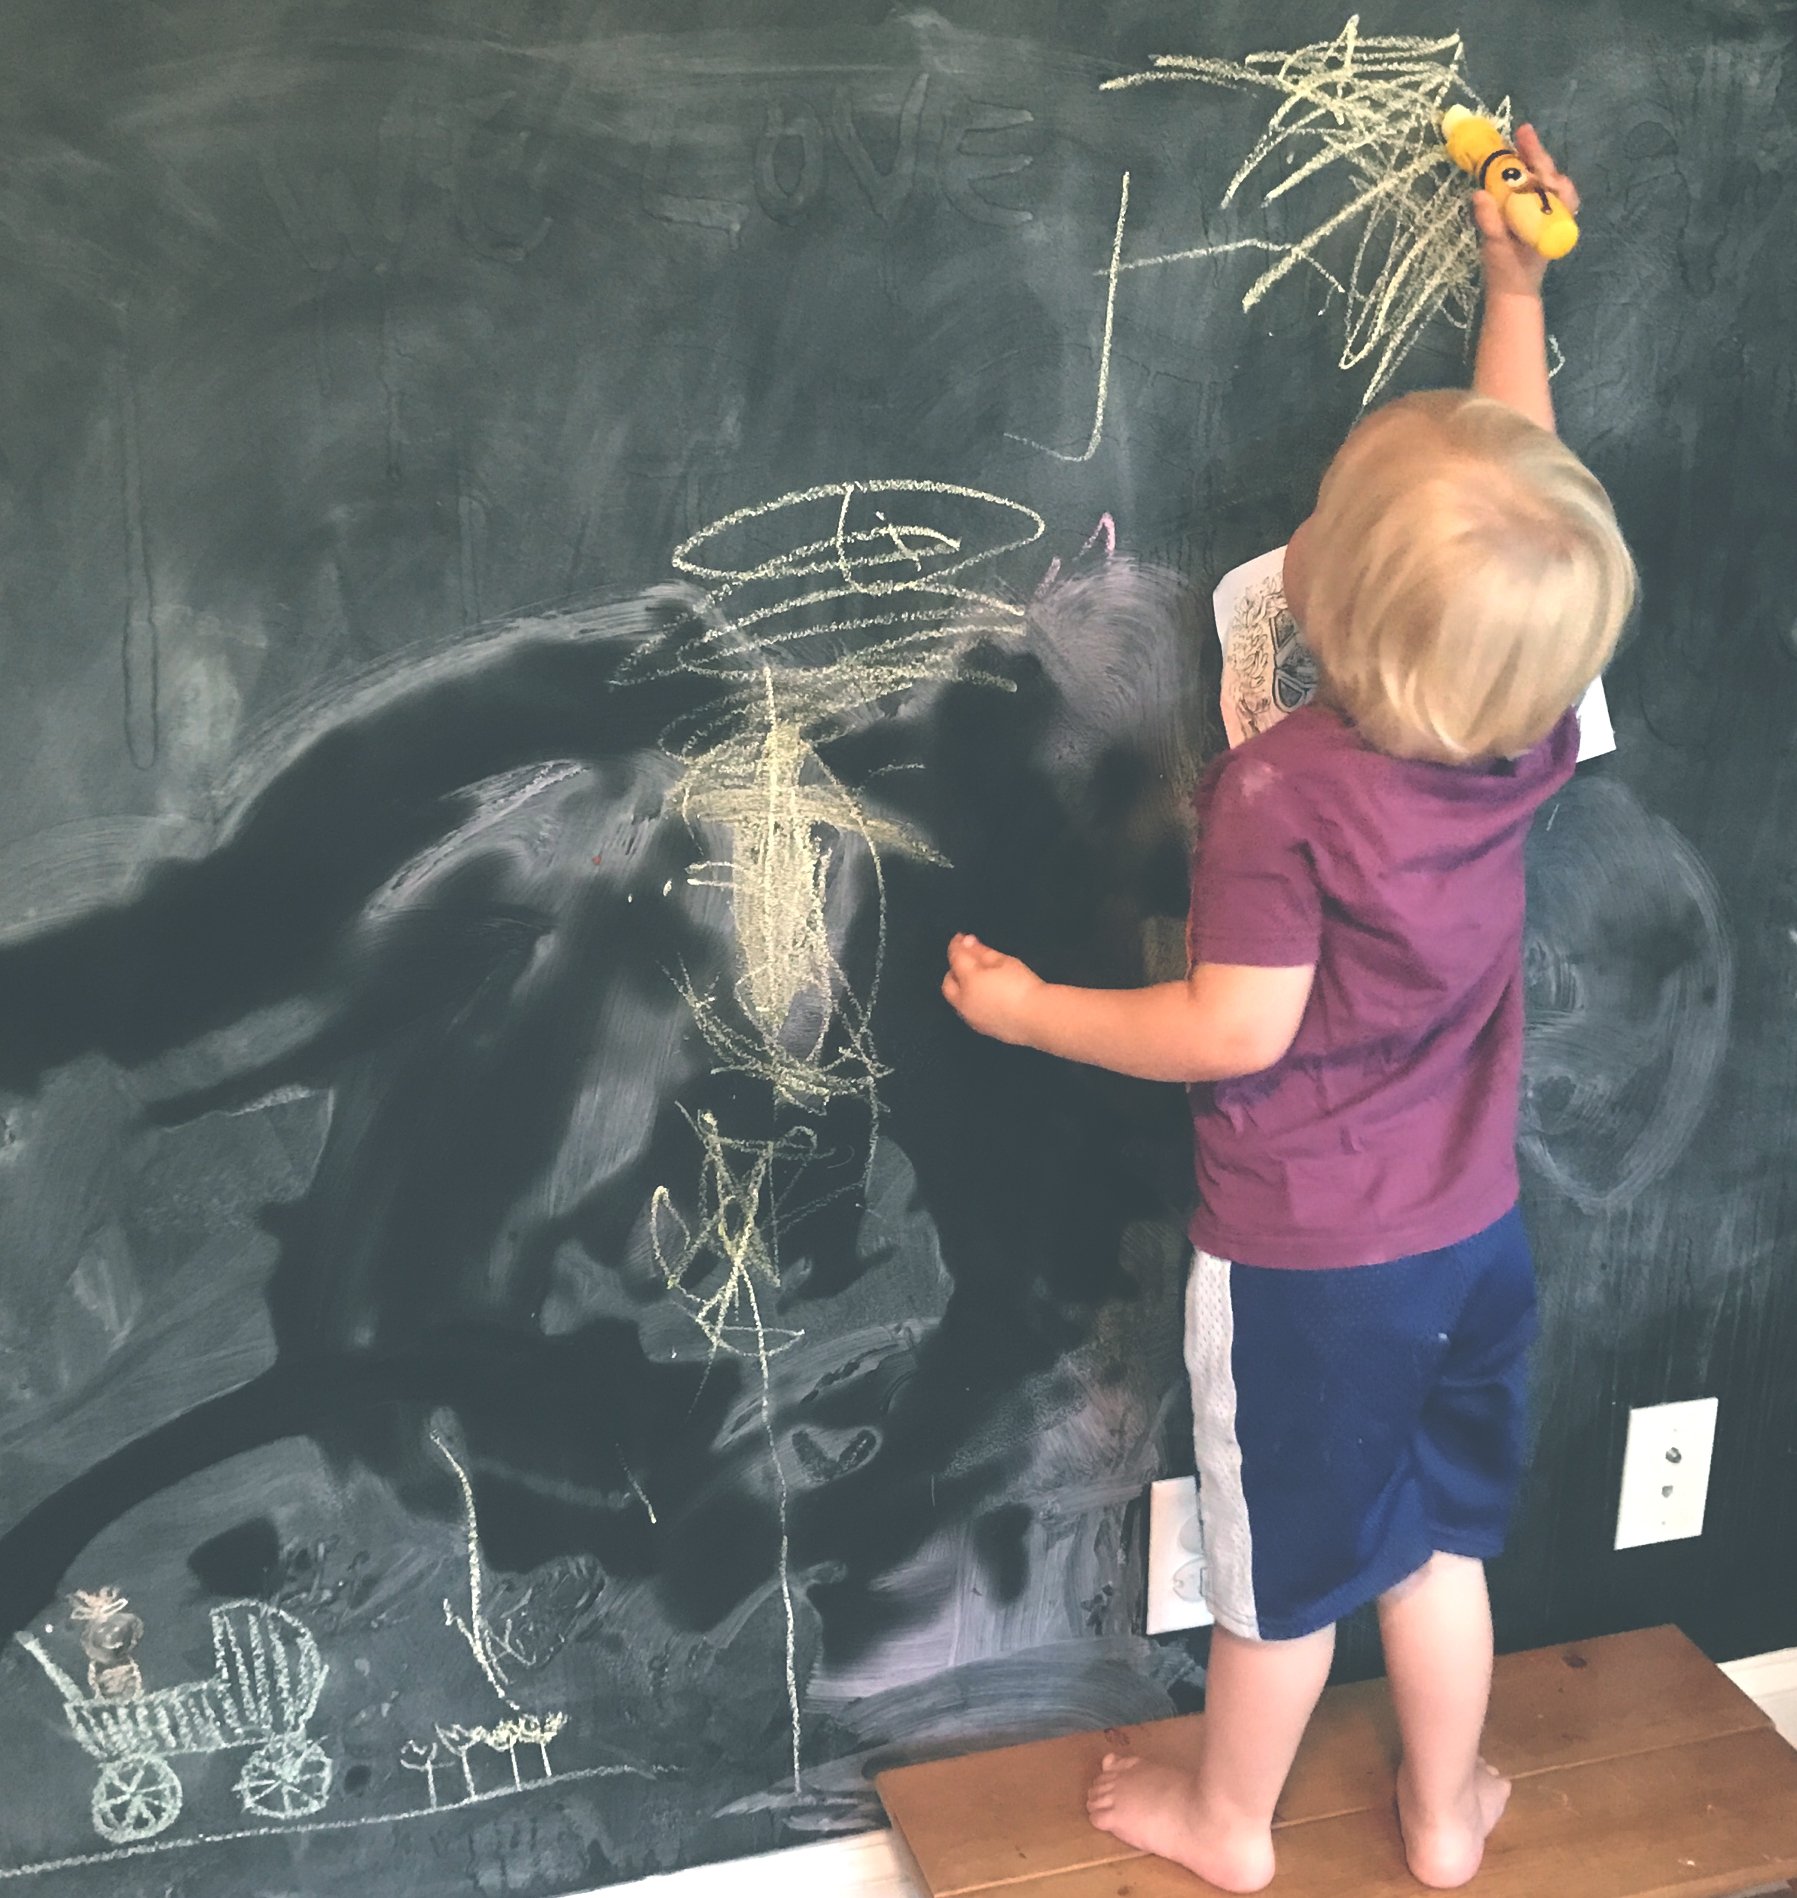 blackboard1_no_exif copy.jpg